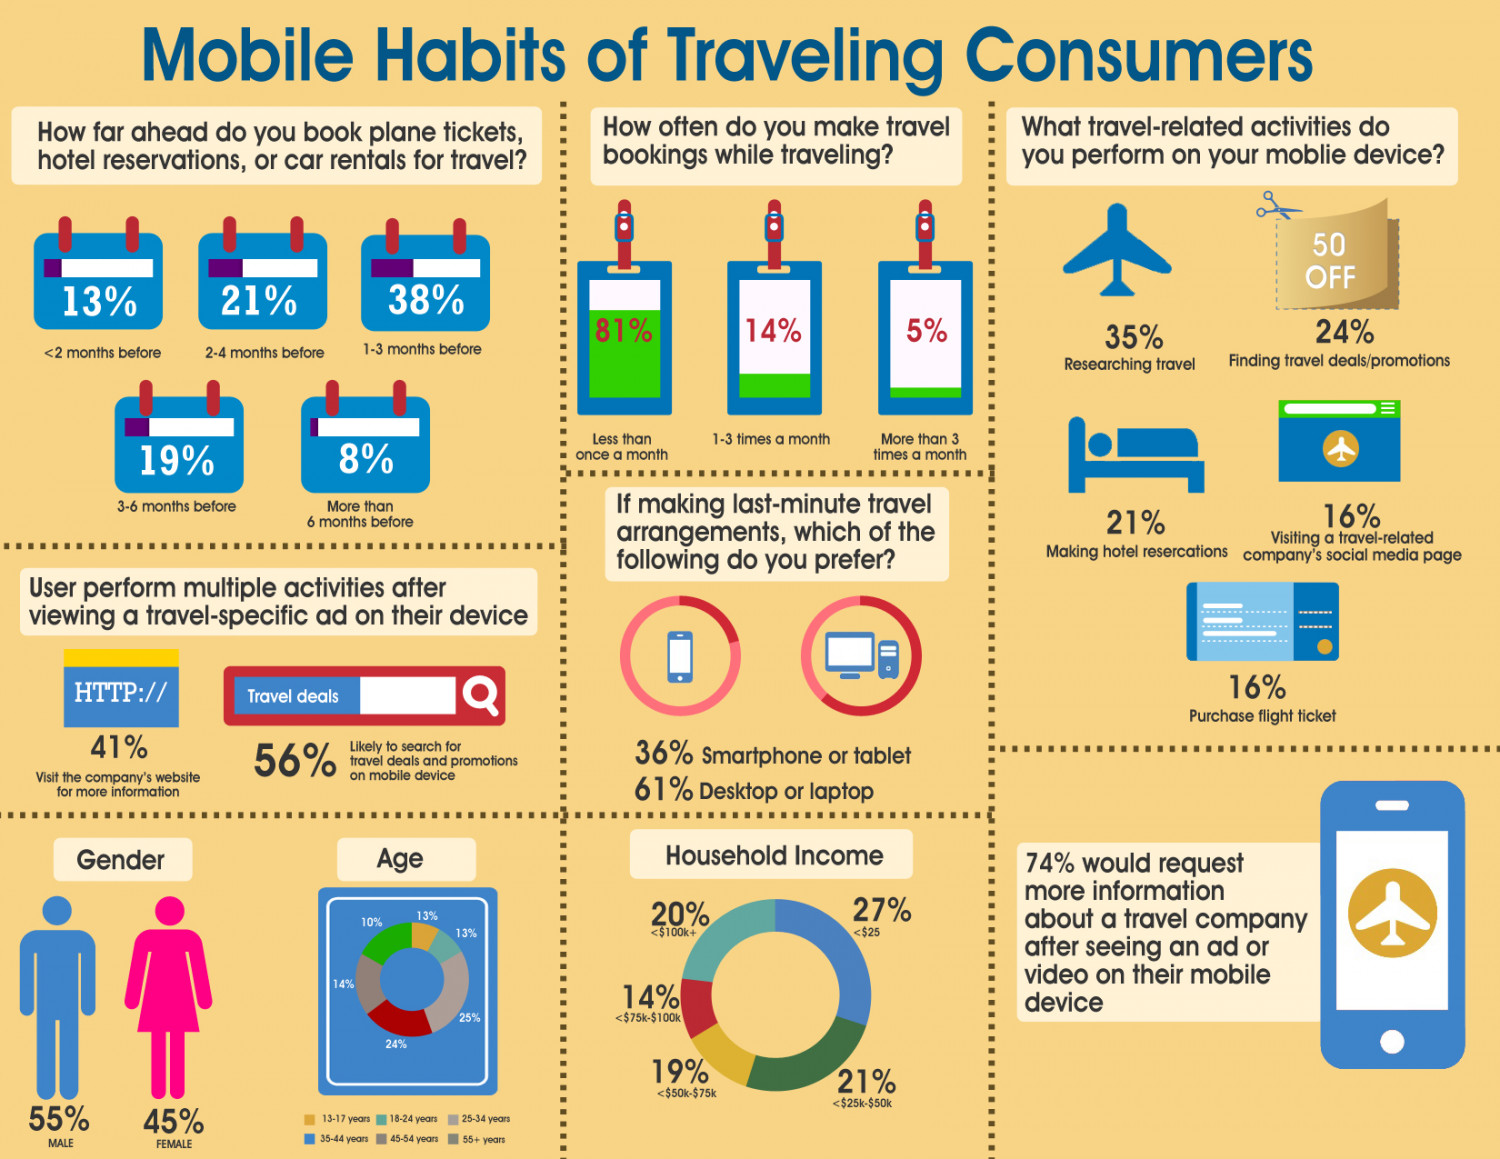 Mobile Habits of Traveling Consumers Infographic